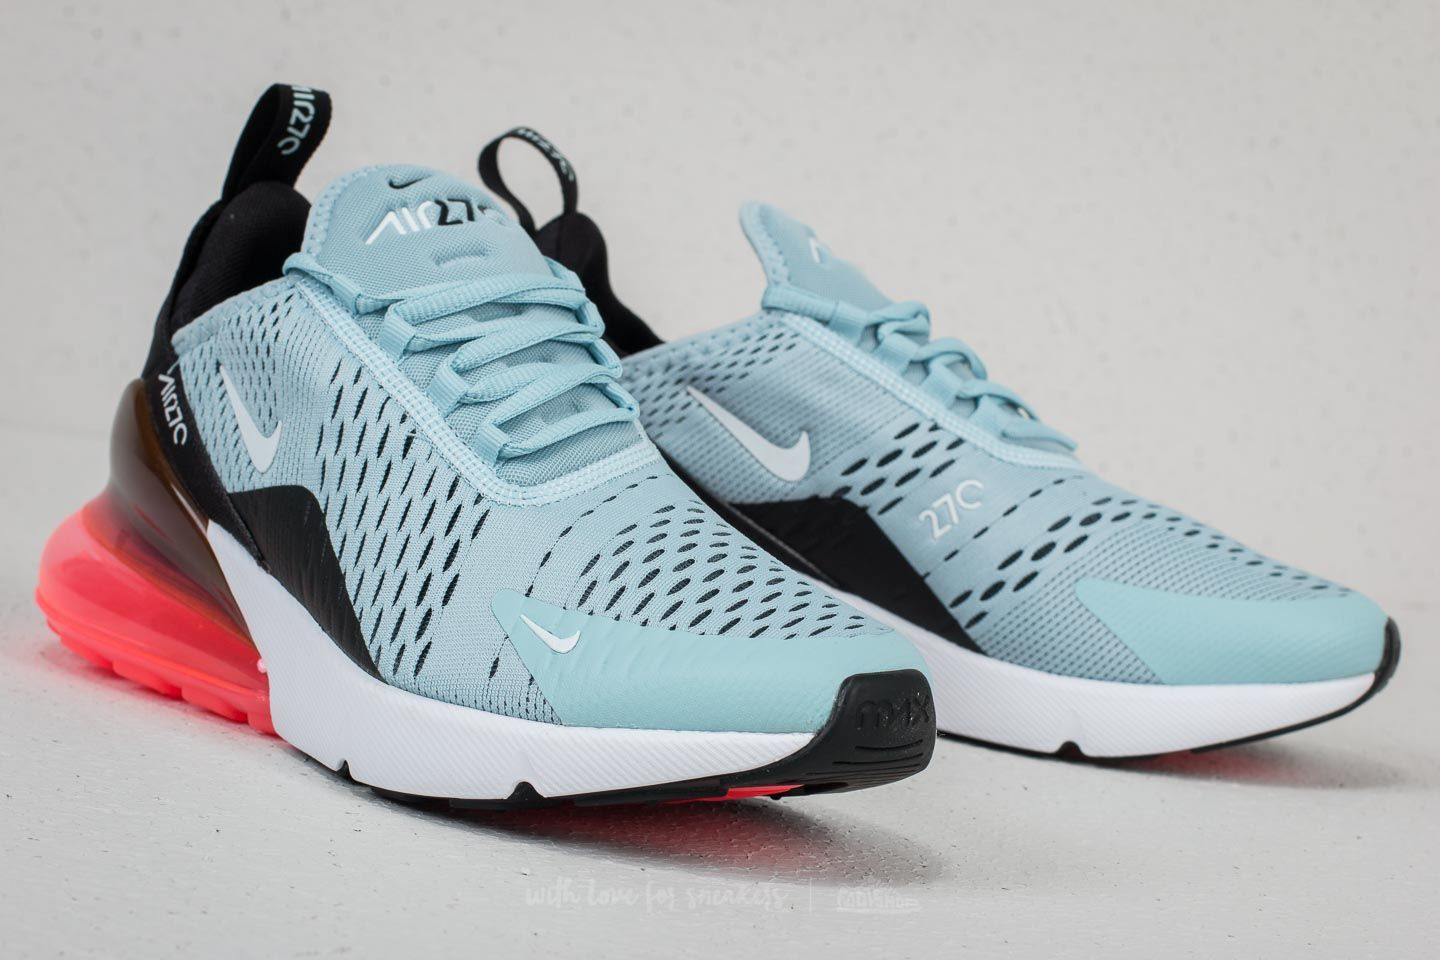 Nike W Air Max 270 Ocean Bliss White Black | Footshop